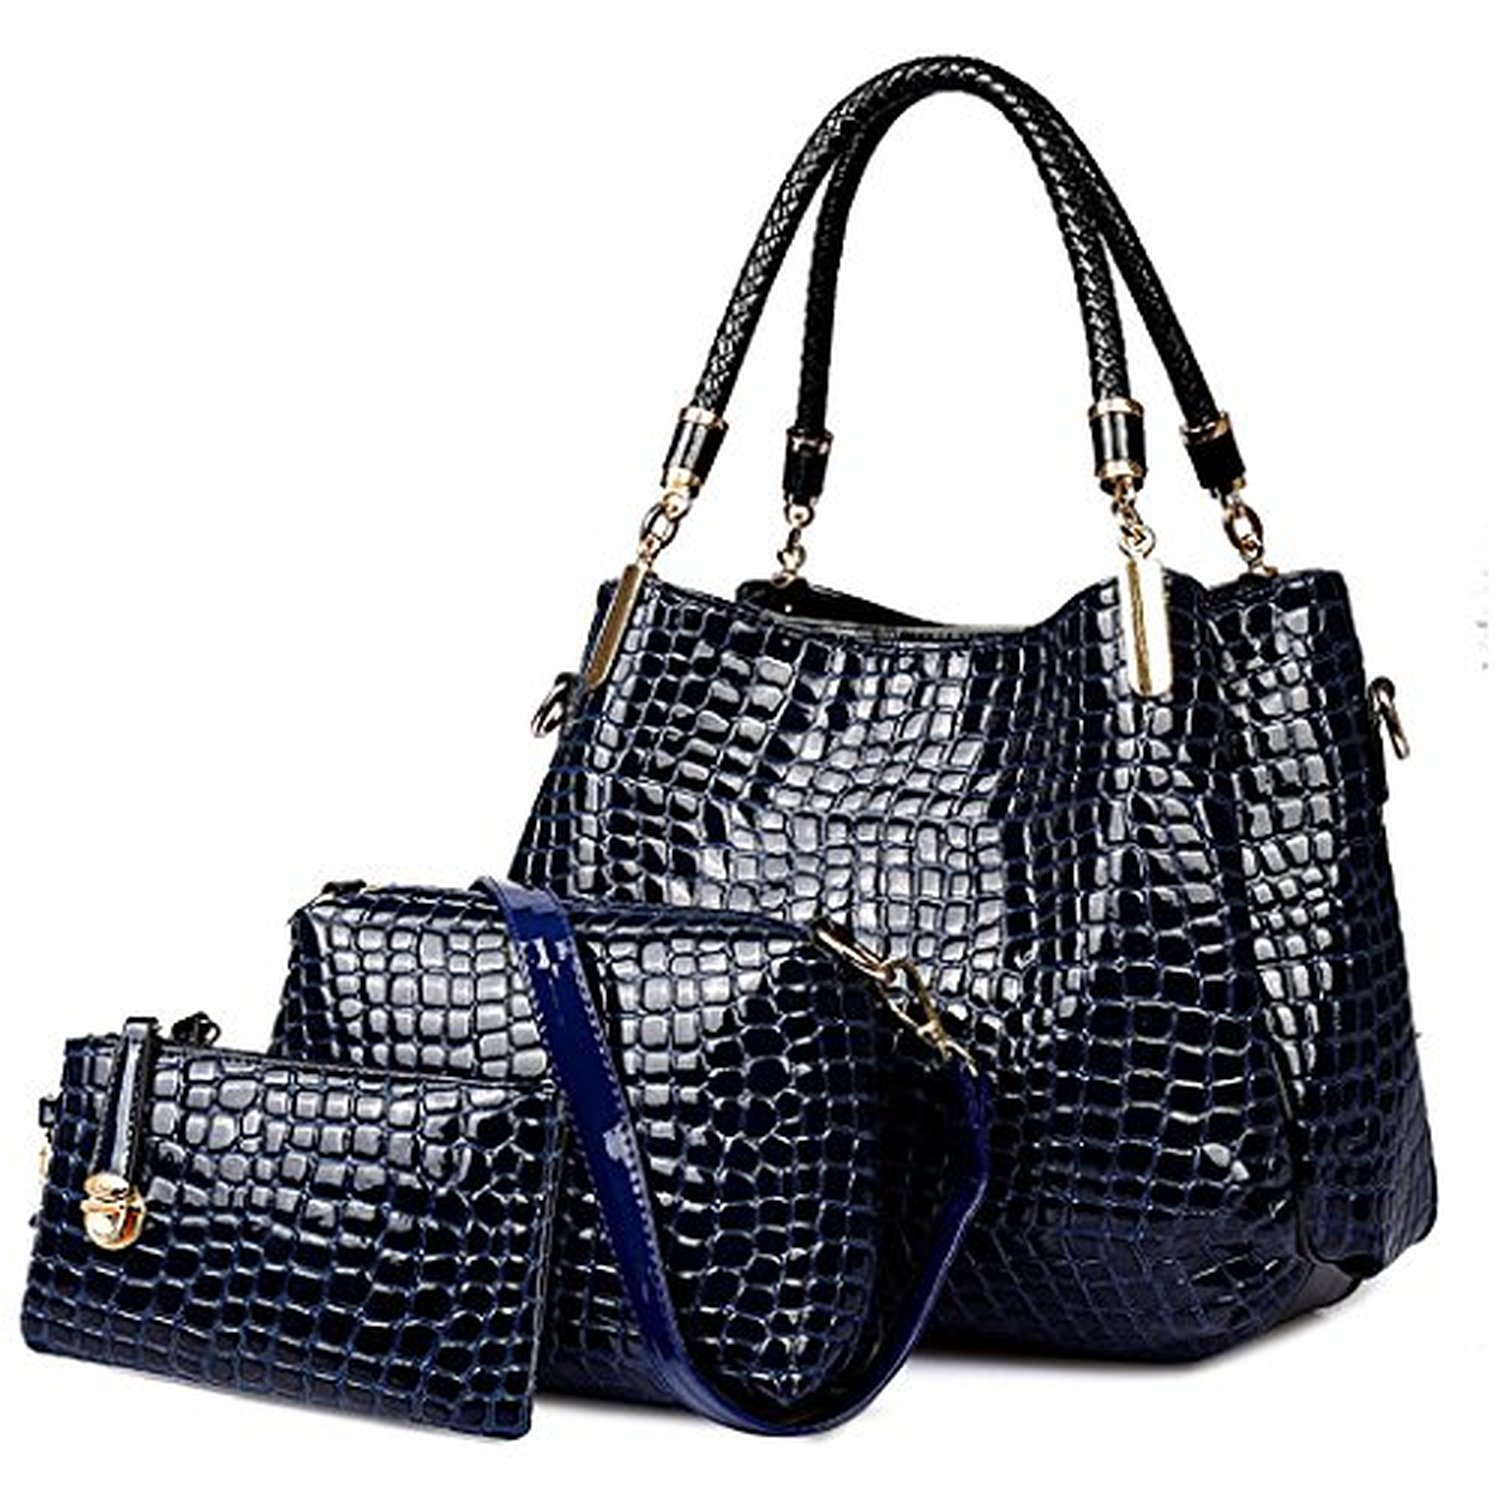 crocodile femmes sac en cuir set mesdames hobo sac bandouli re et sac main vin 2016 soldes. Black Bedroom Furniture Sets. Home Design Ideas